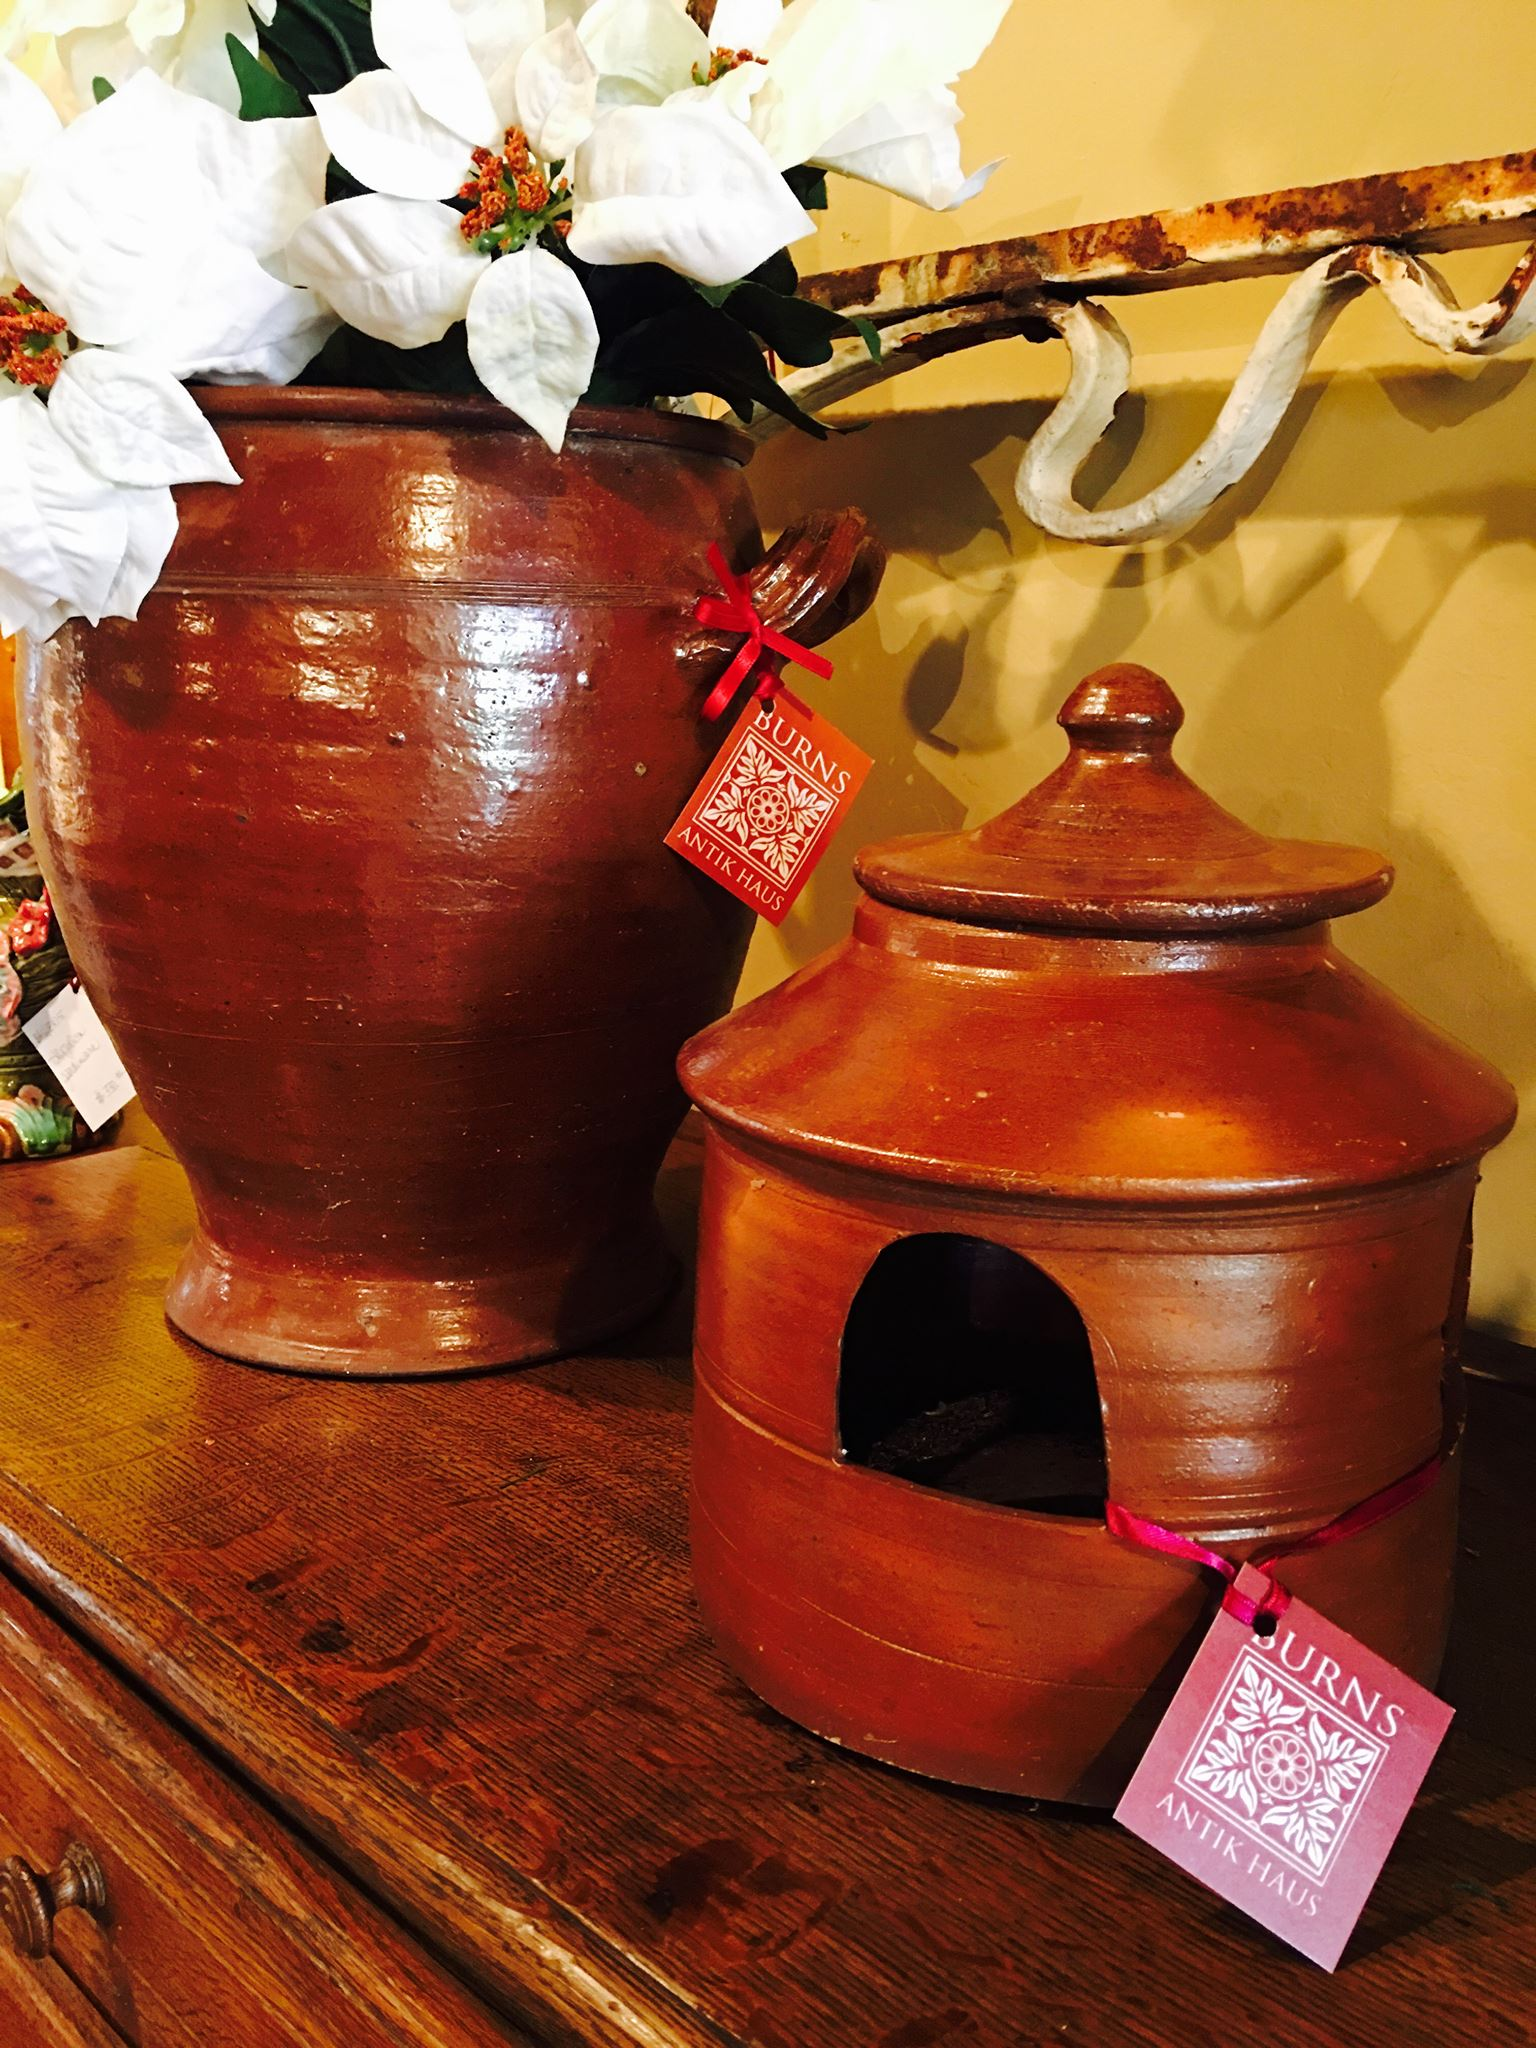 For the nature lover in your family, French Glazed Pottery pigeon/bird feeder! Come shop Burns Antik Haus for that hard to buy person in your life!!! 2195 Calder Ave, Beaumont, TX, 77701, 409.835.3080